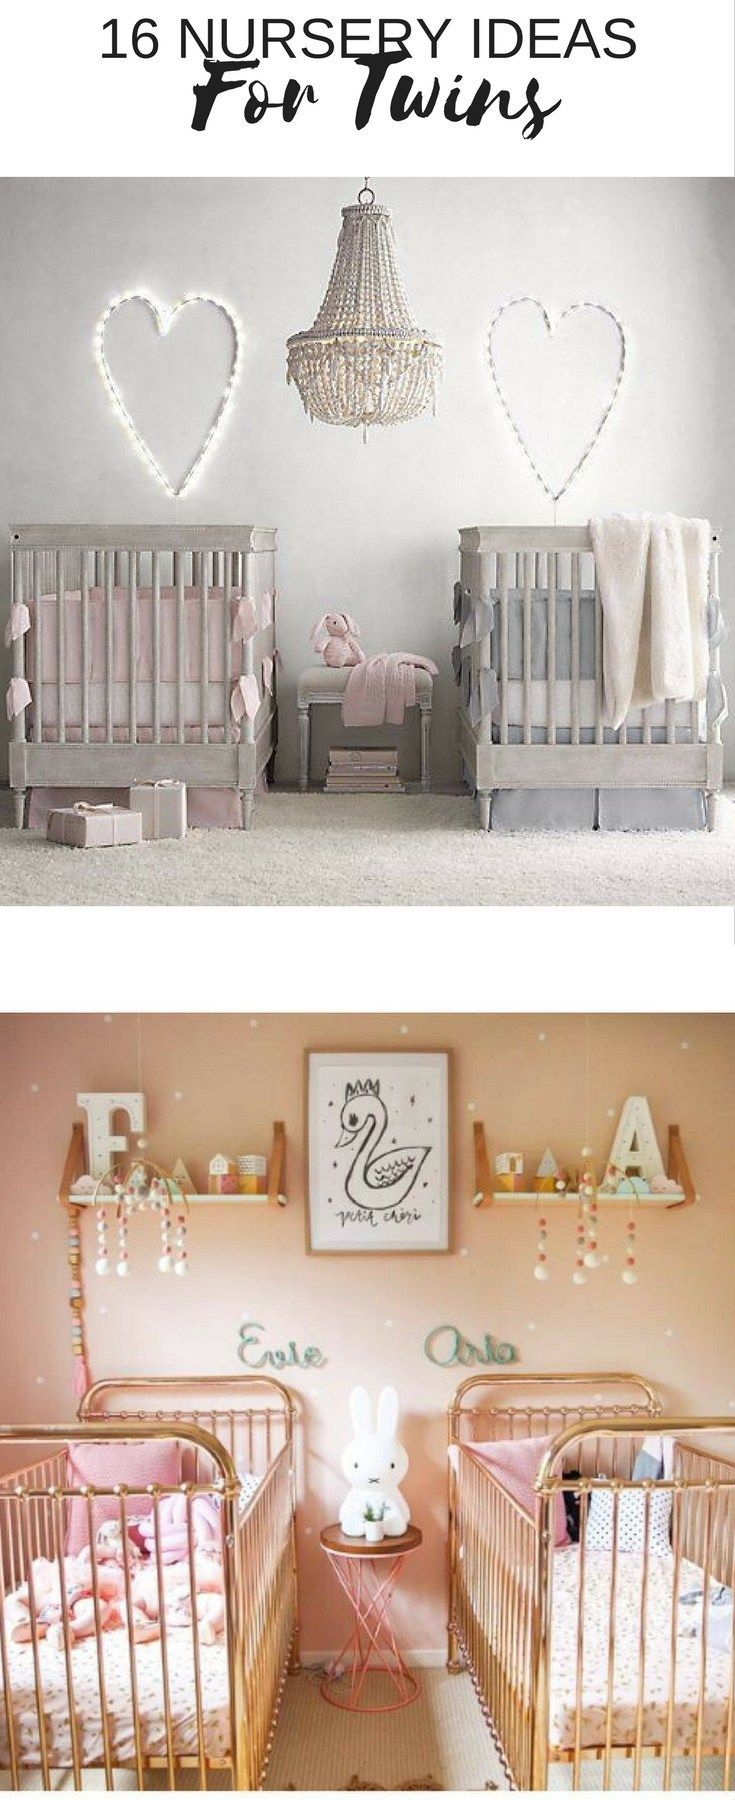 Here's a round up of some of the most gorgeous twin nursery ideas I've come across to inspire you to think outside the box.